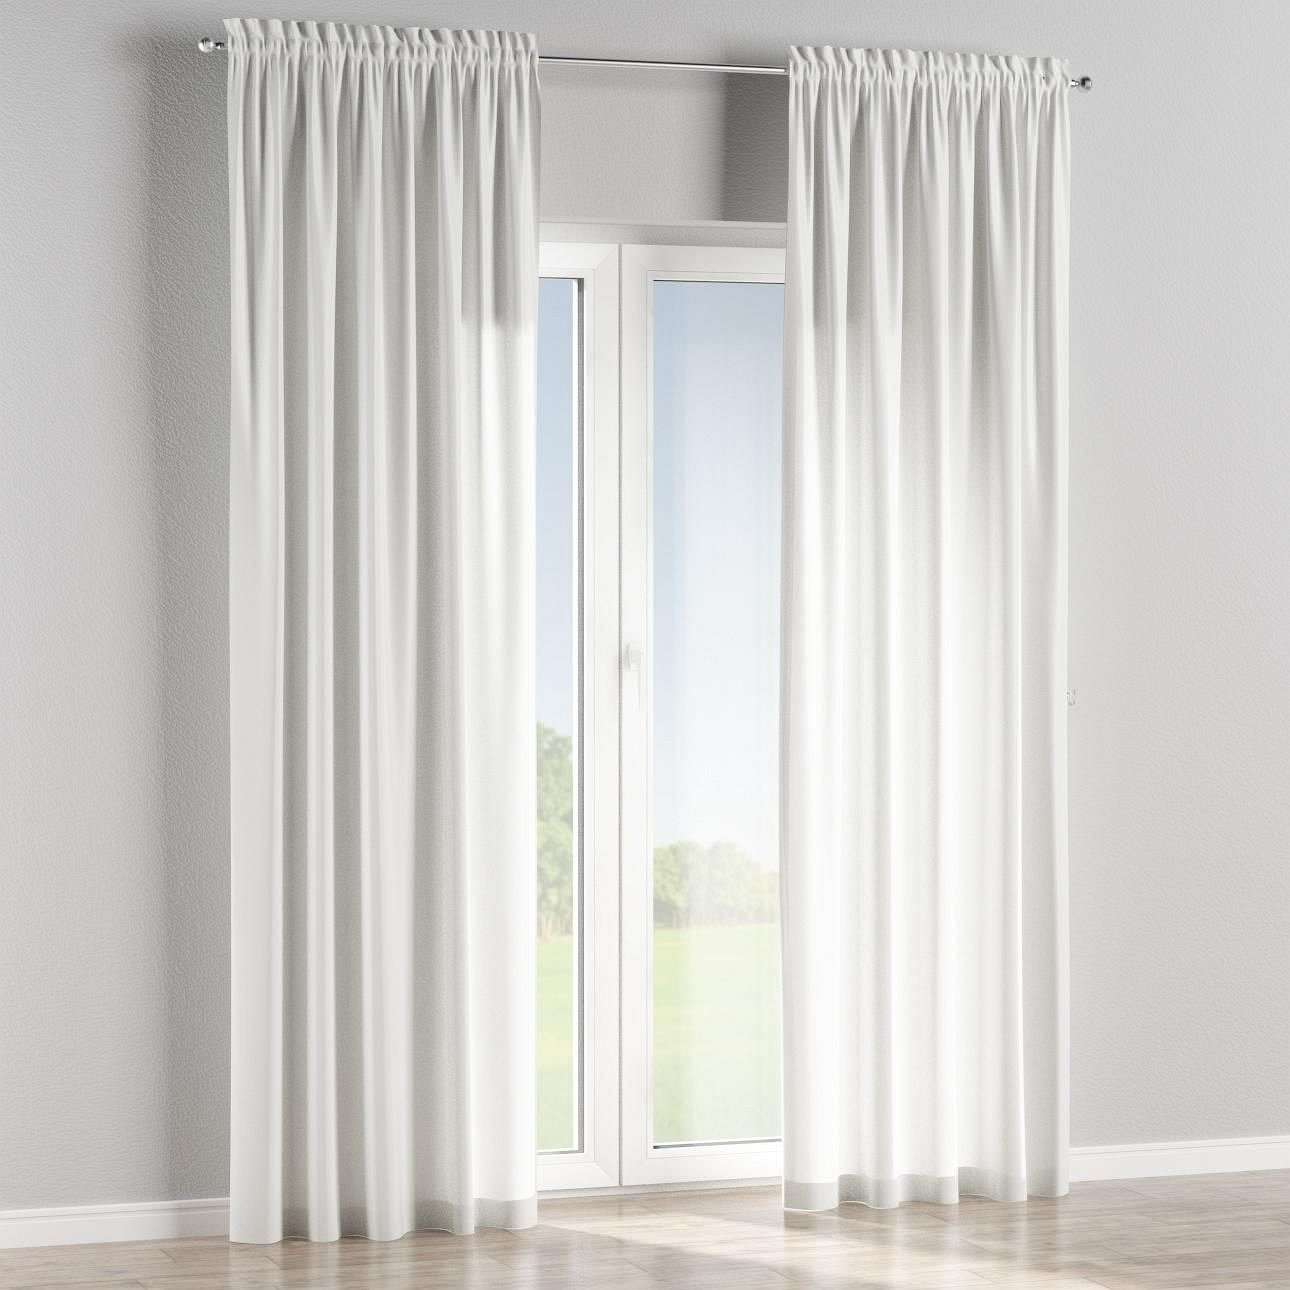 Slot and frill lined curtains in collection Rustica, fabric: 138-10